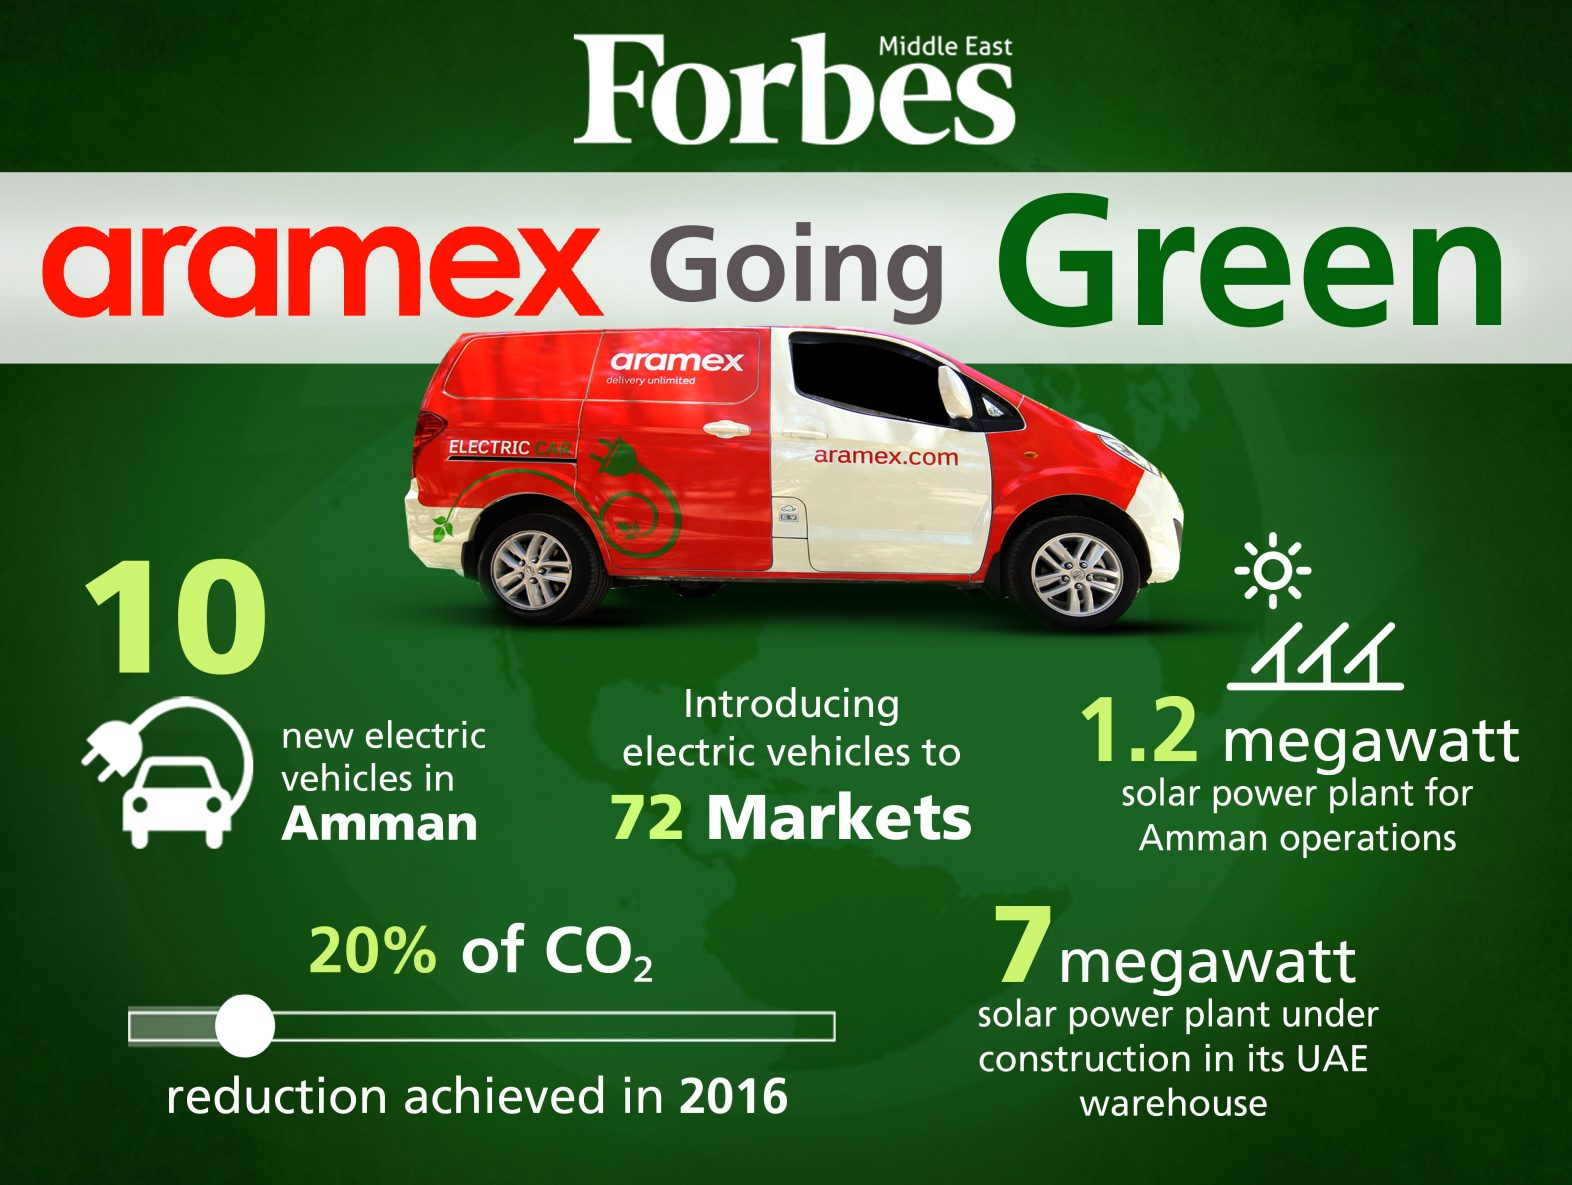 environment, green, Electric Vehicles, Solar Power, Aramex